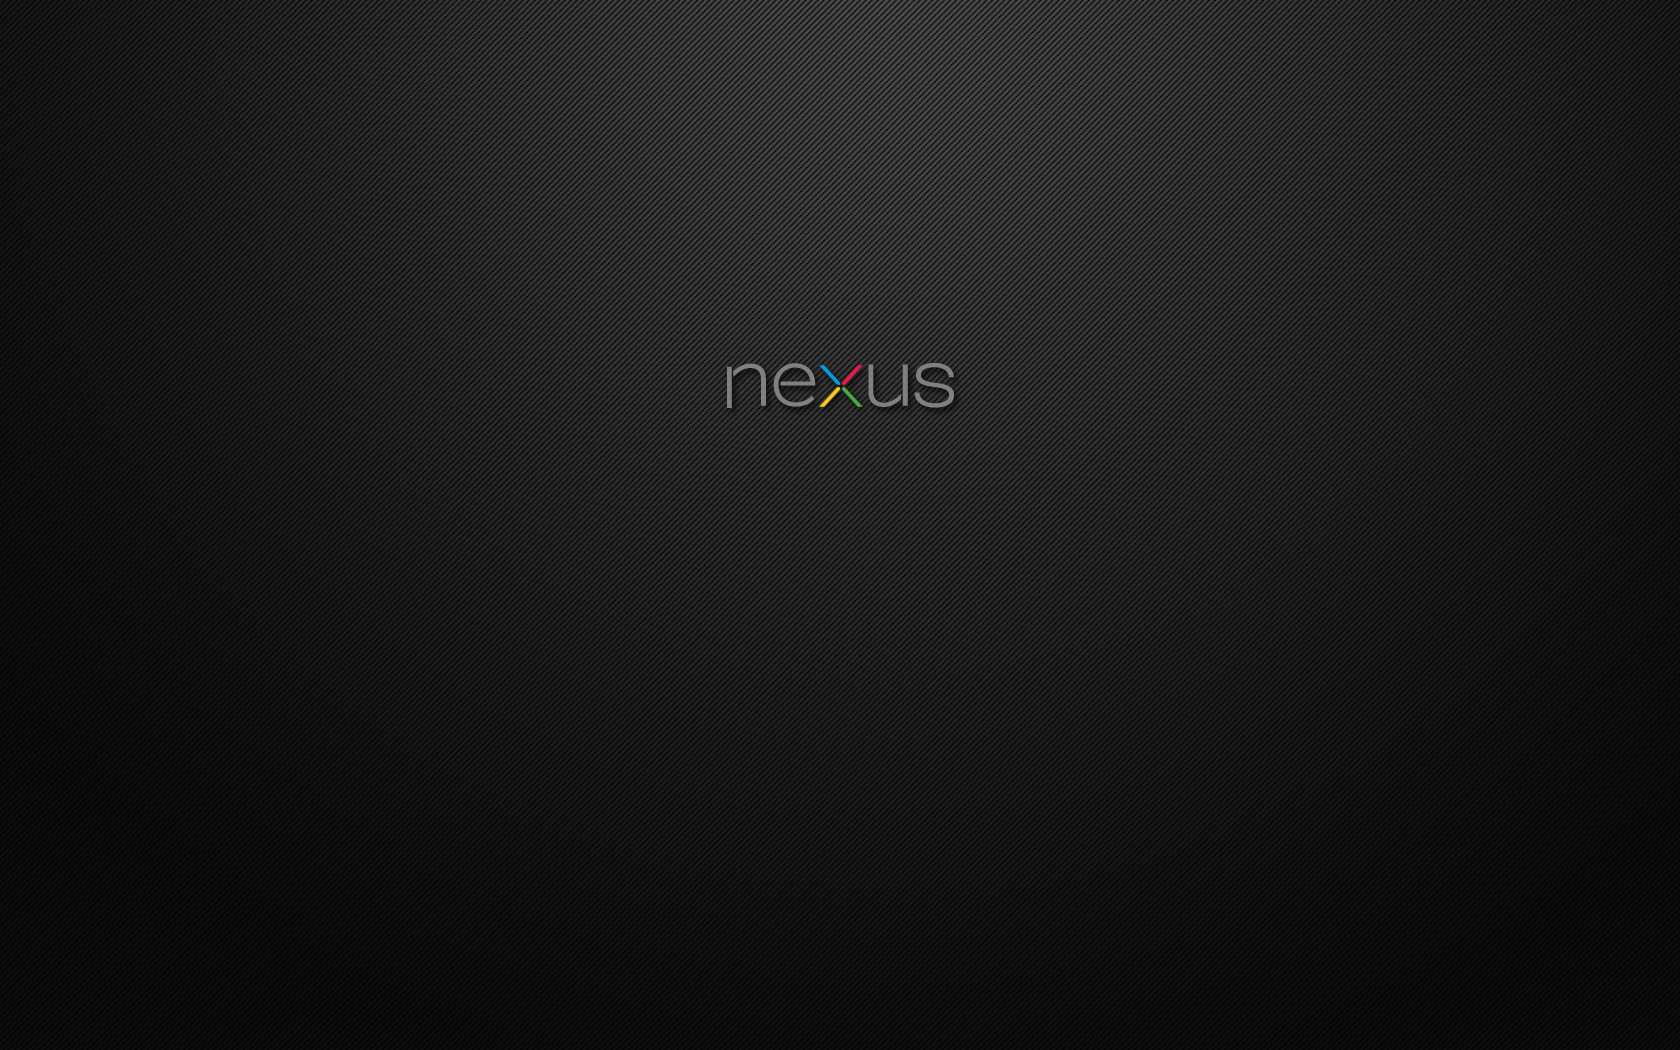 download google nexus logo wallpaper gallery